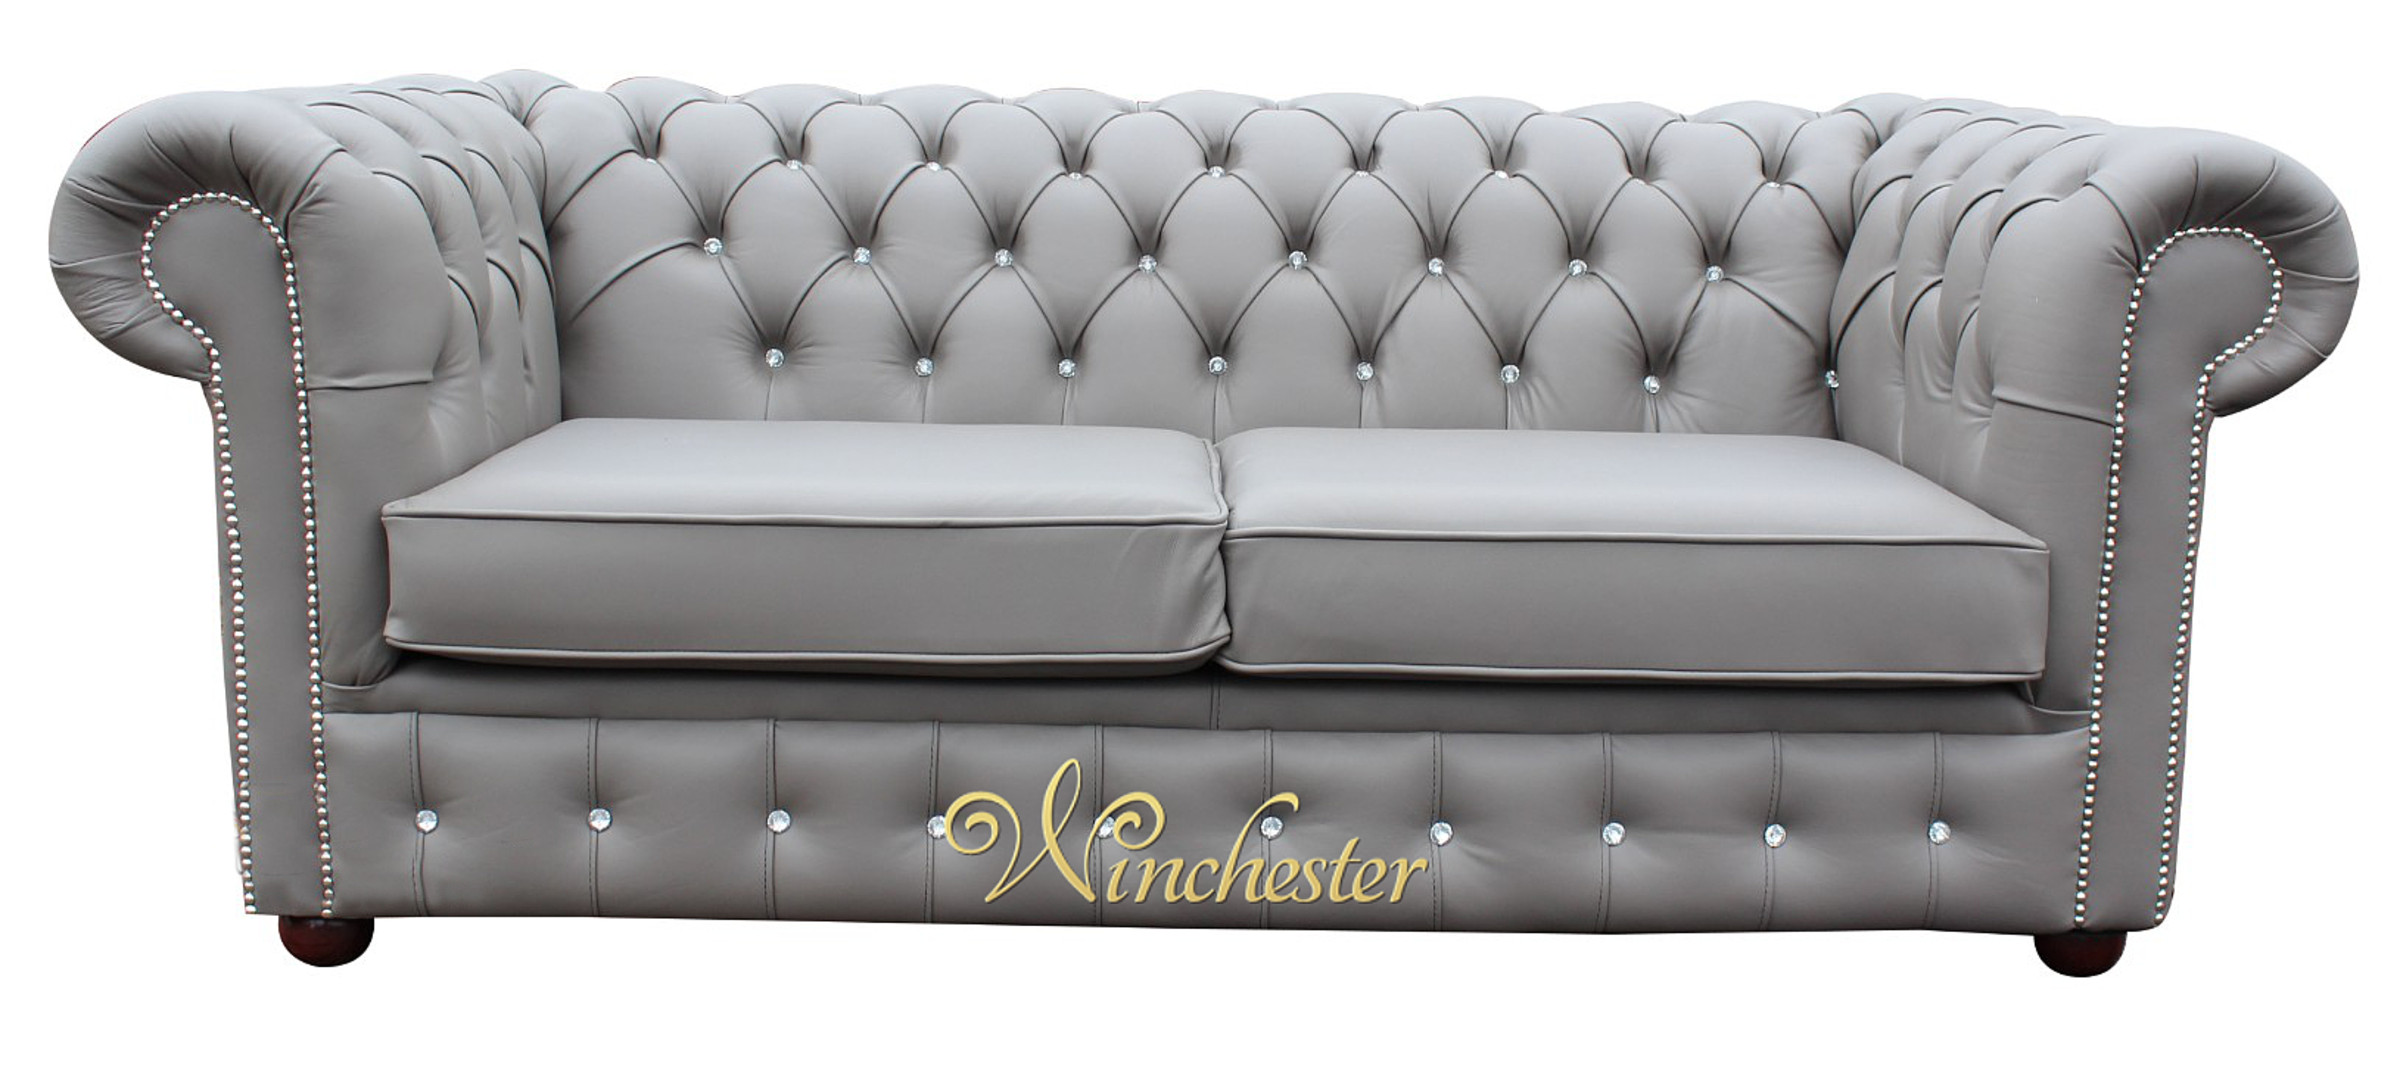 Chesterfield 2 Seater Swarovski CRYSTALLIZED Diamond Moon